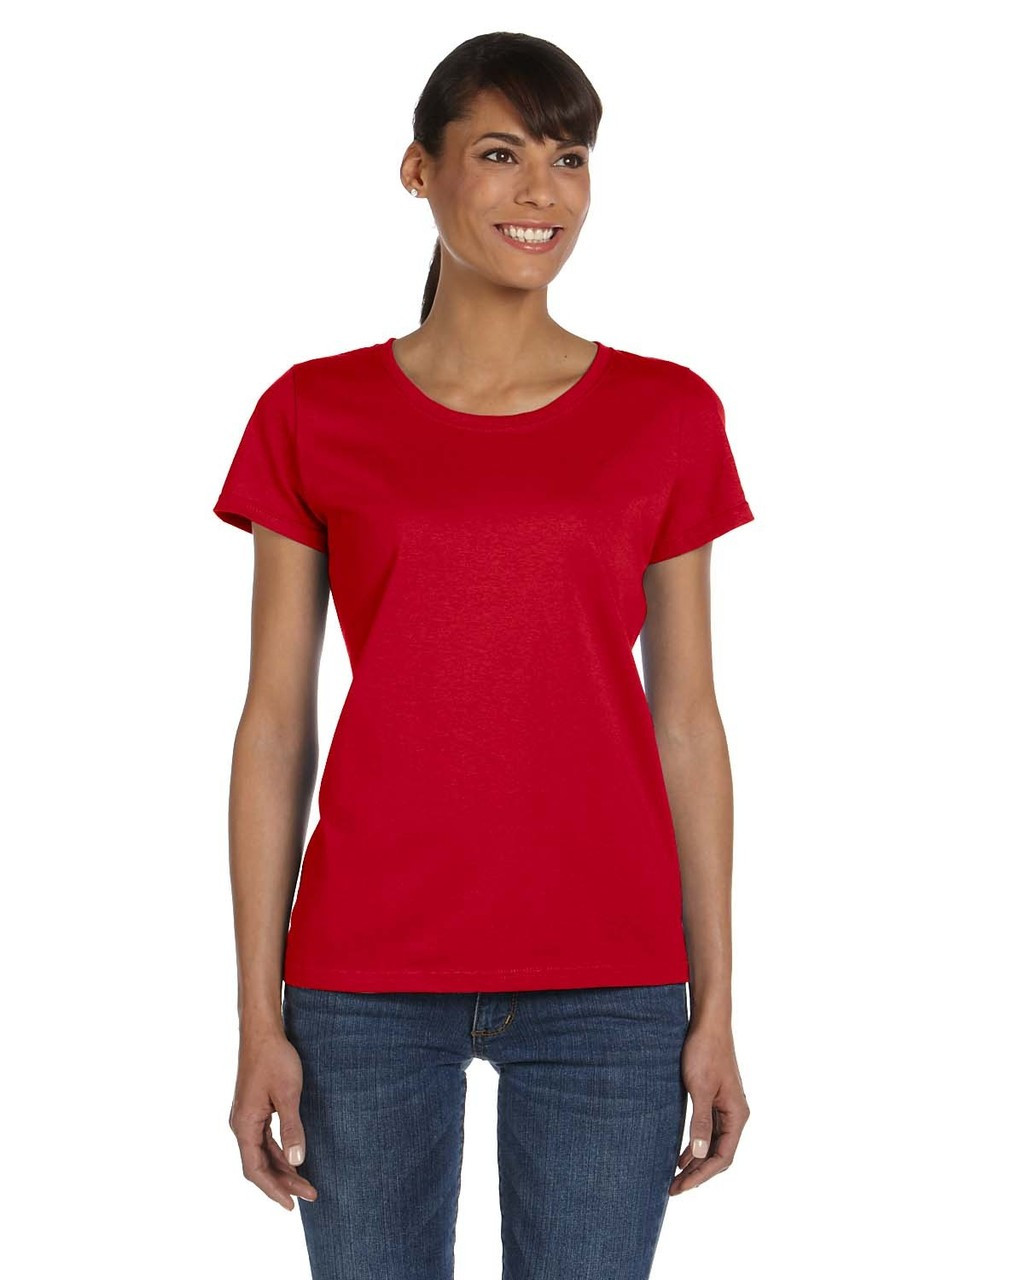 True Red - L3930R Fruit of the Loom Ladies' 100% Heavy Cotton HD® T-Shirt | Blankclothing.ca